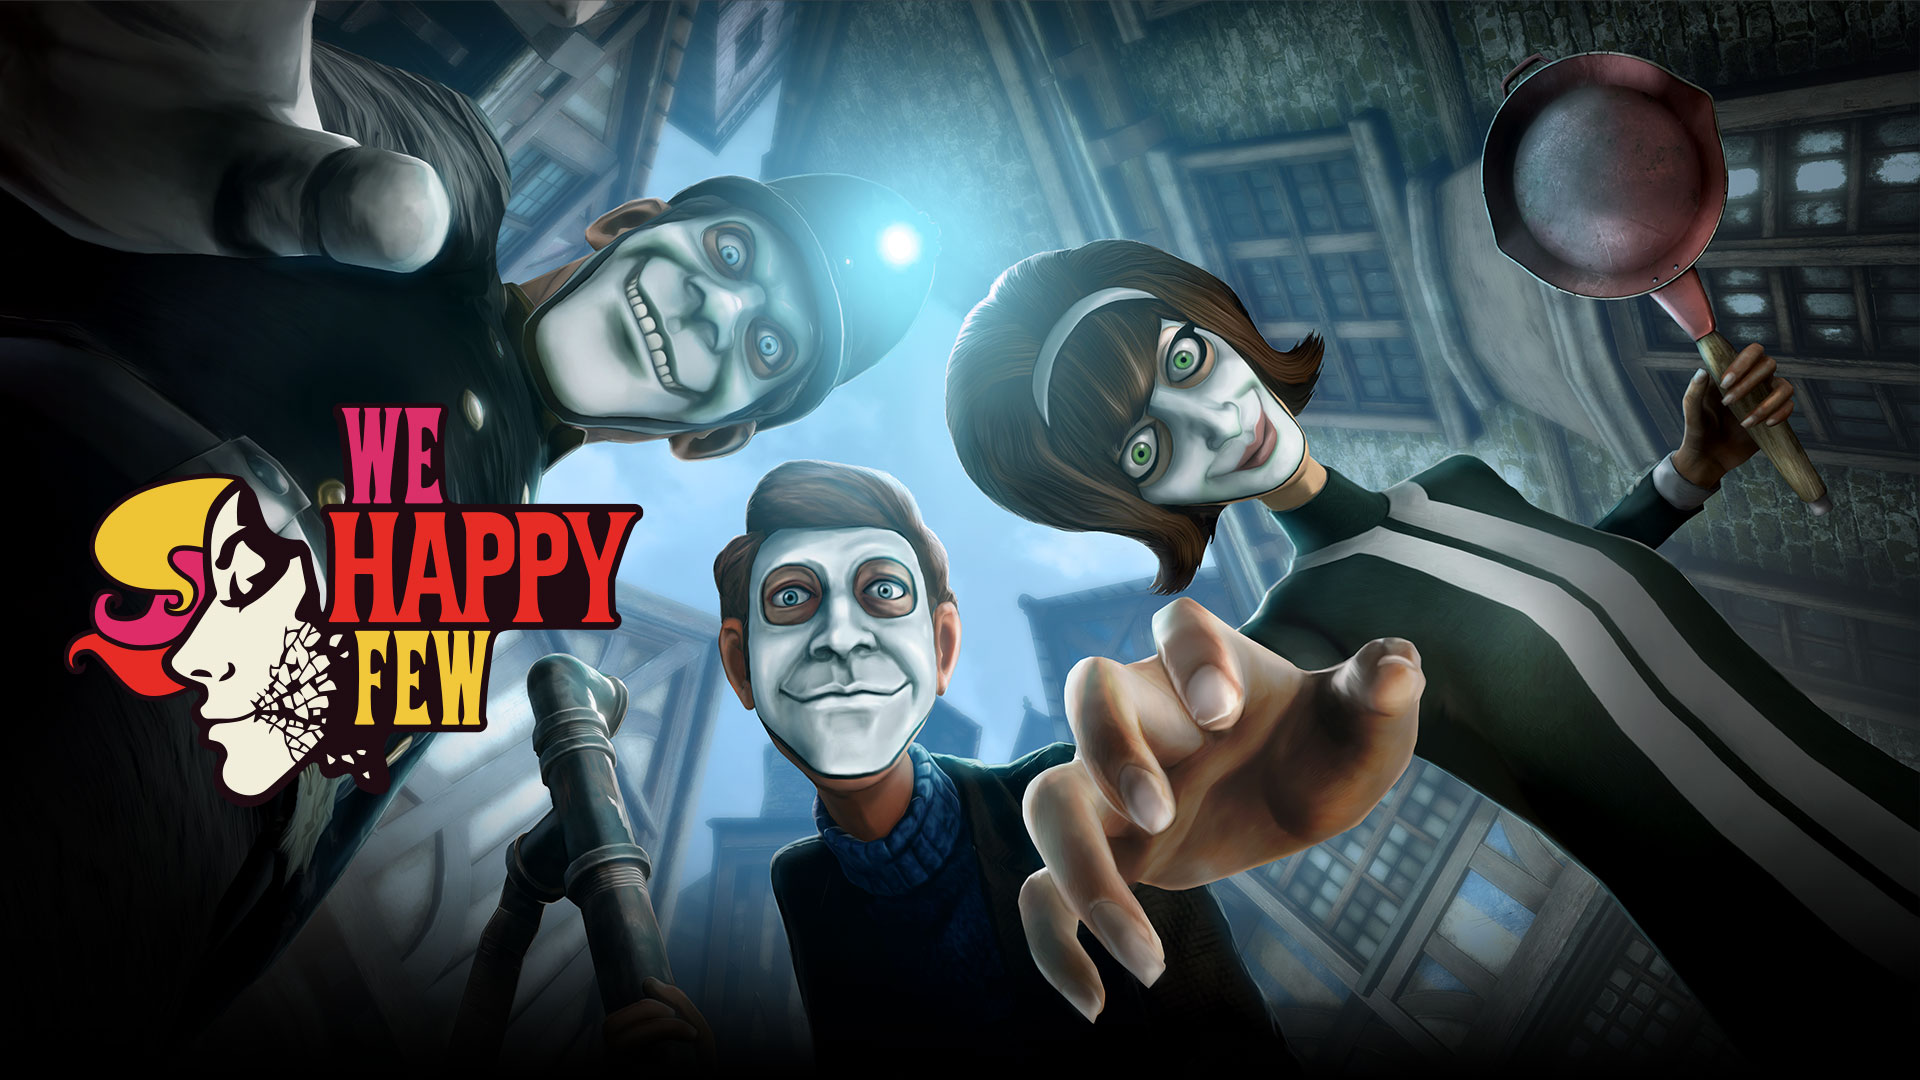 We Happy Few. A wellie and two characters with white smiling masks looking down on you